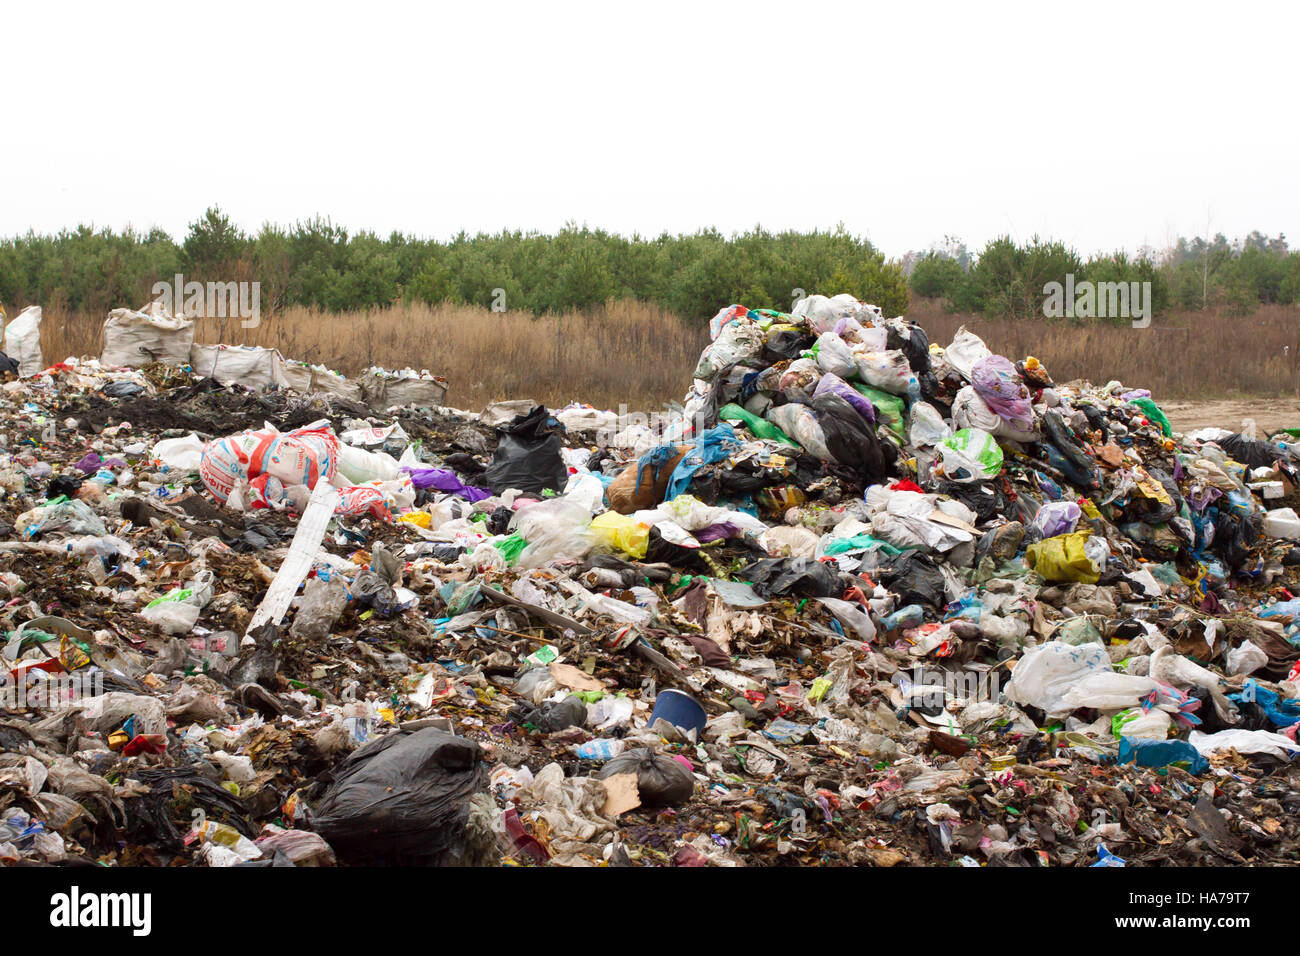 Landfill in Ukraine, piles of plastic dumped in . The roads along inorganic waste jumble - Stock Image